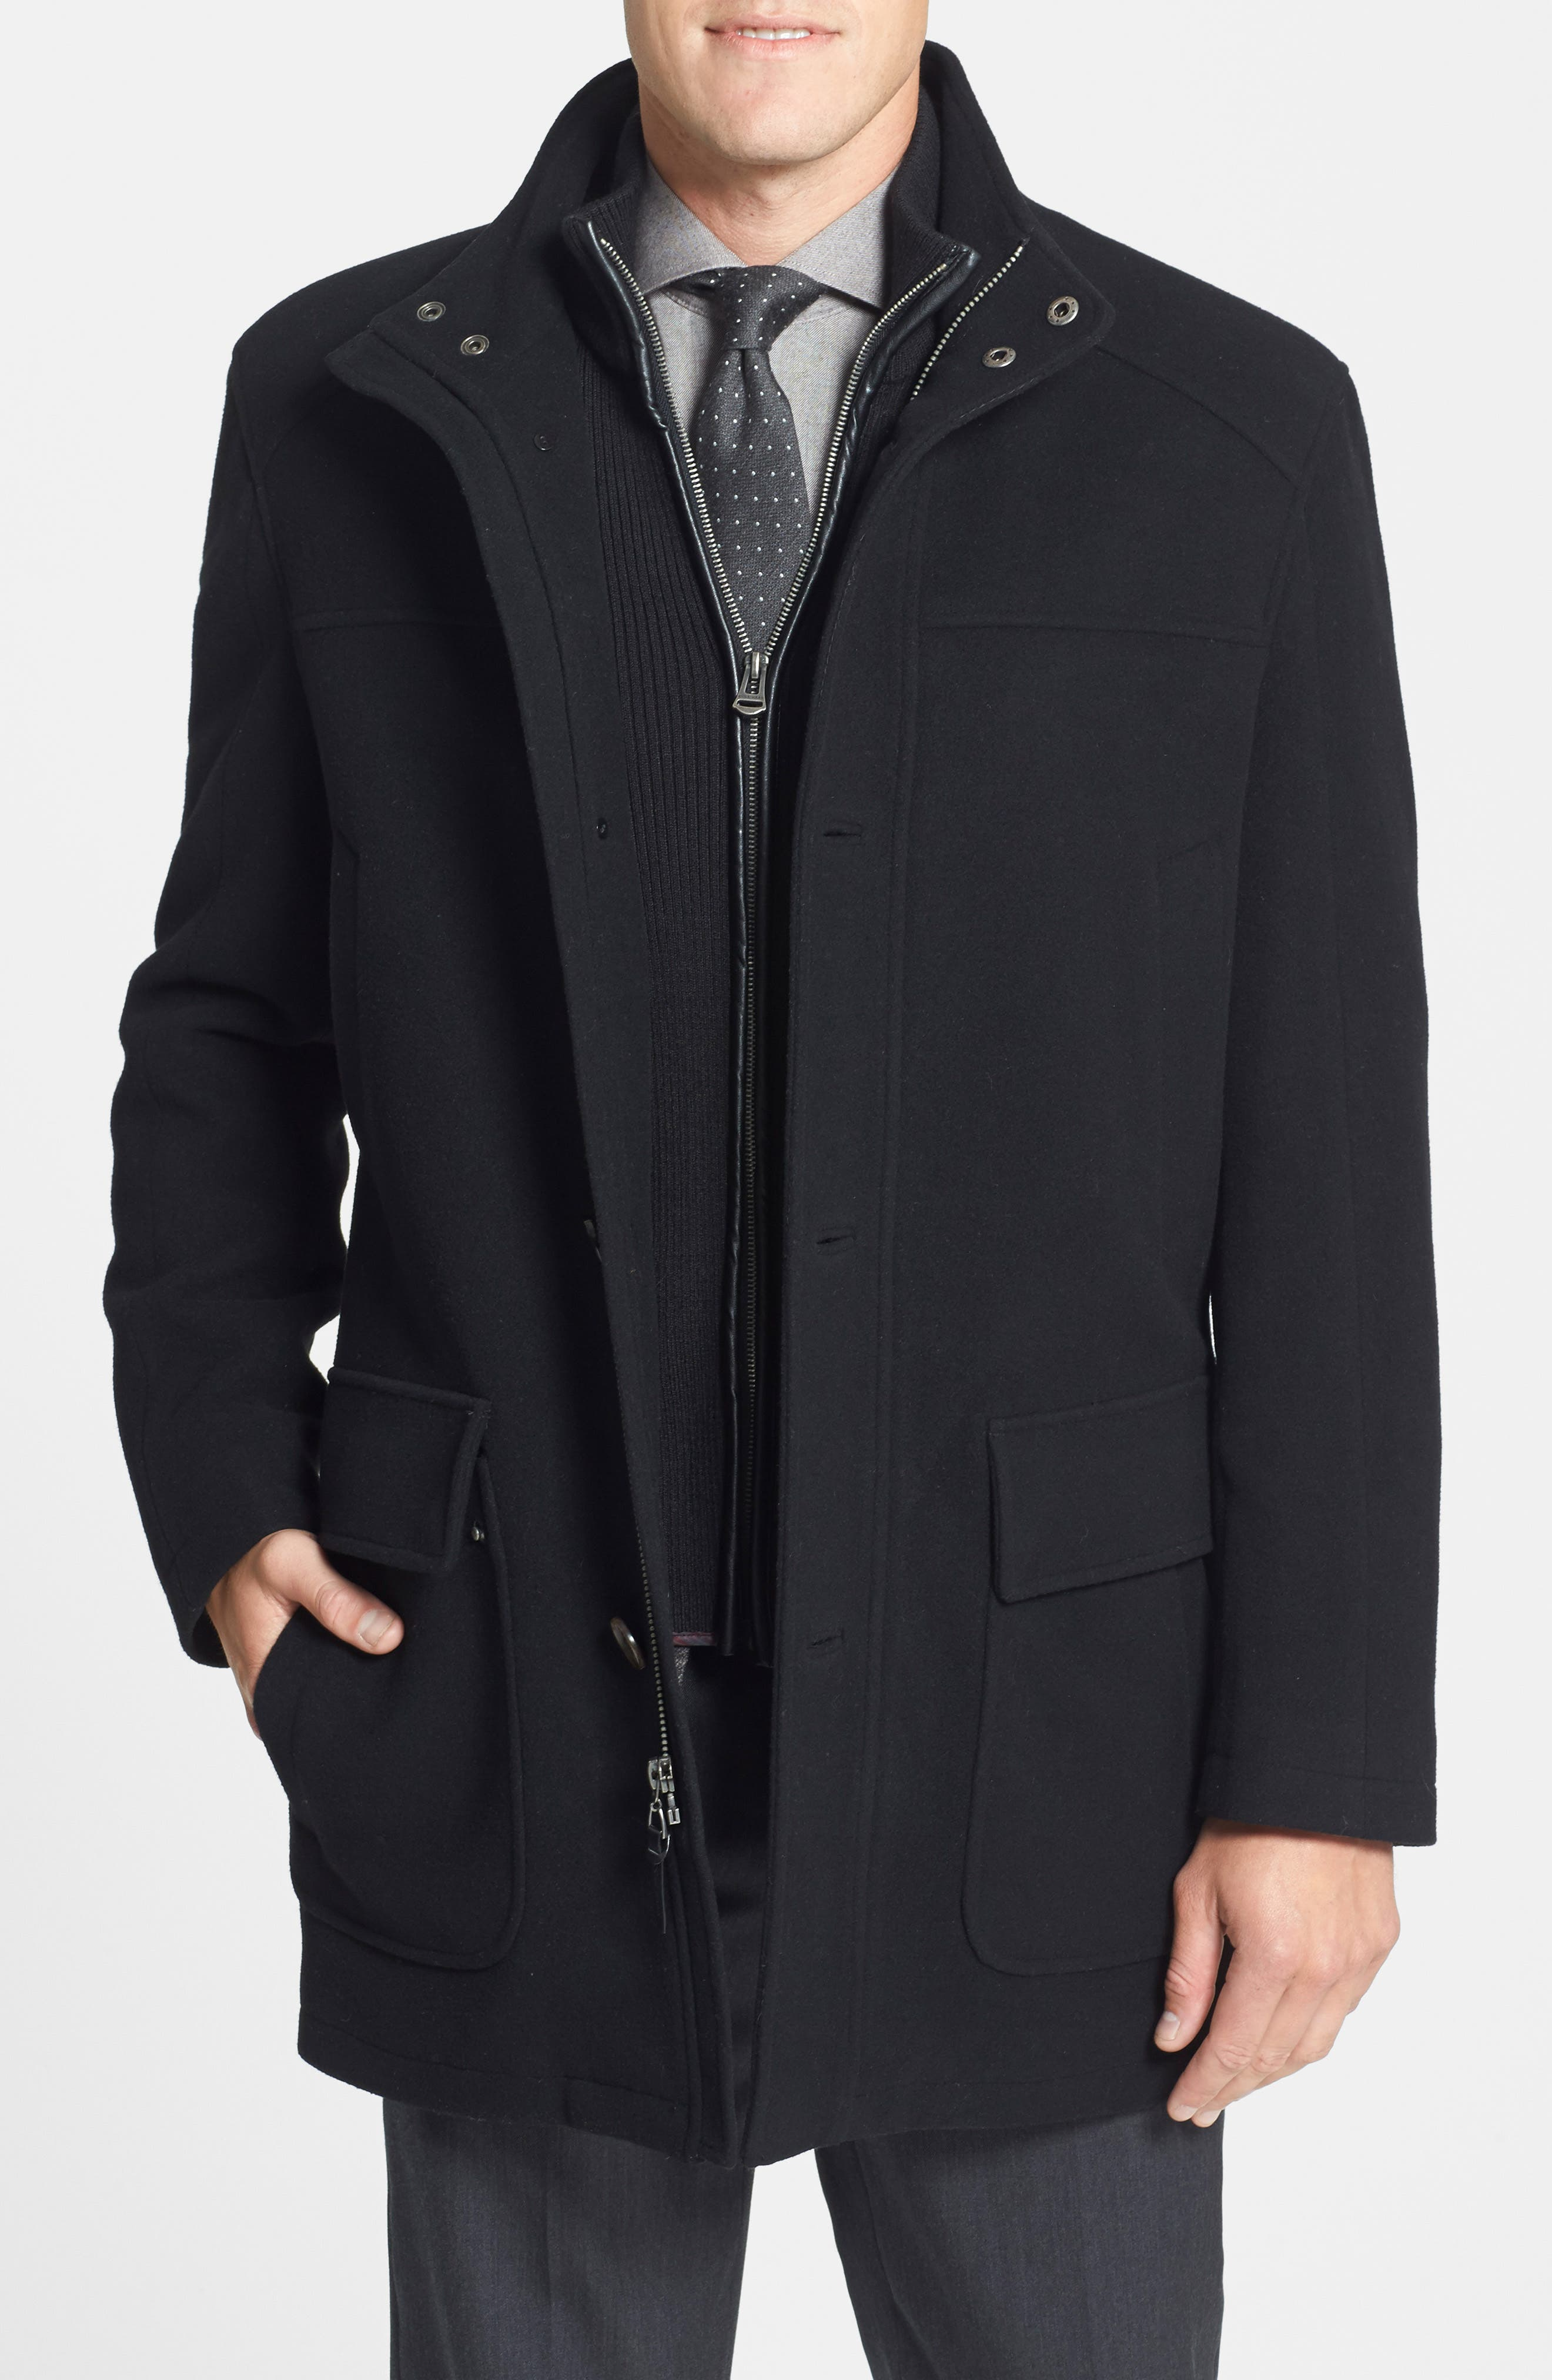 Wool Blend Topcoat with Inset Bib,                             Alternate thumbnail 22, color,